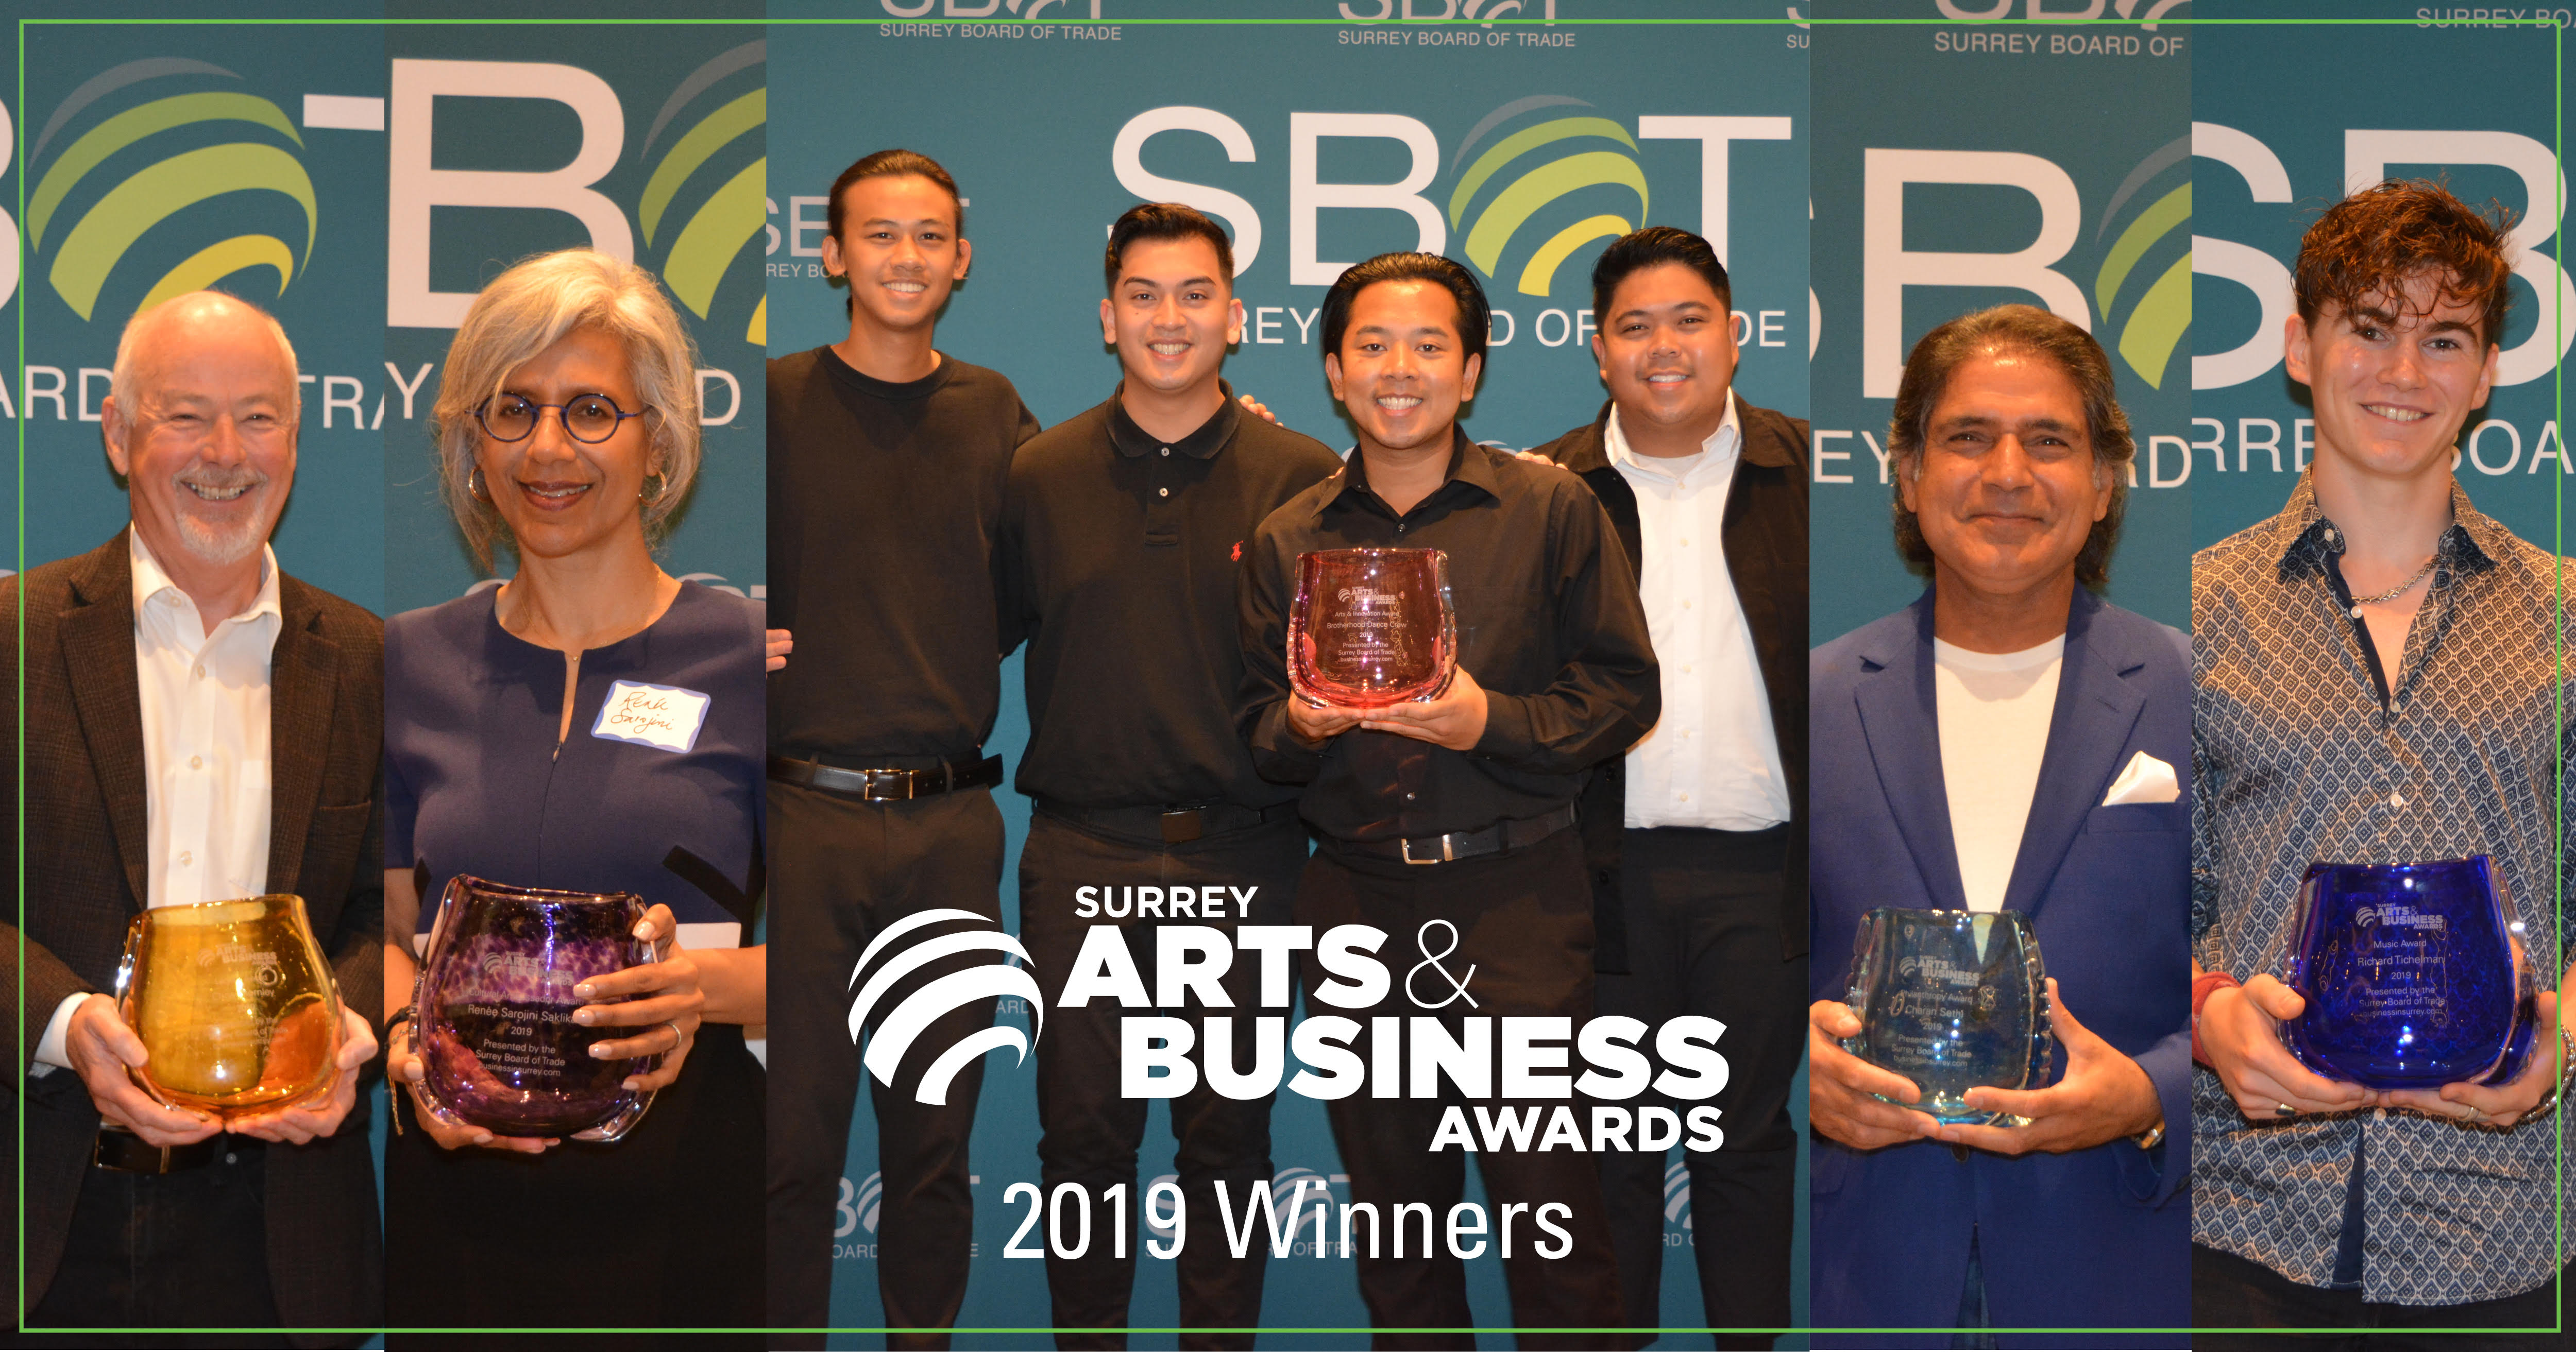 Surrey Board of Trade Announces Winners for the 3rd Surrey Arts & Business Awards